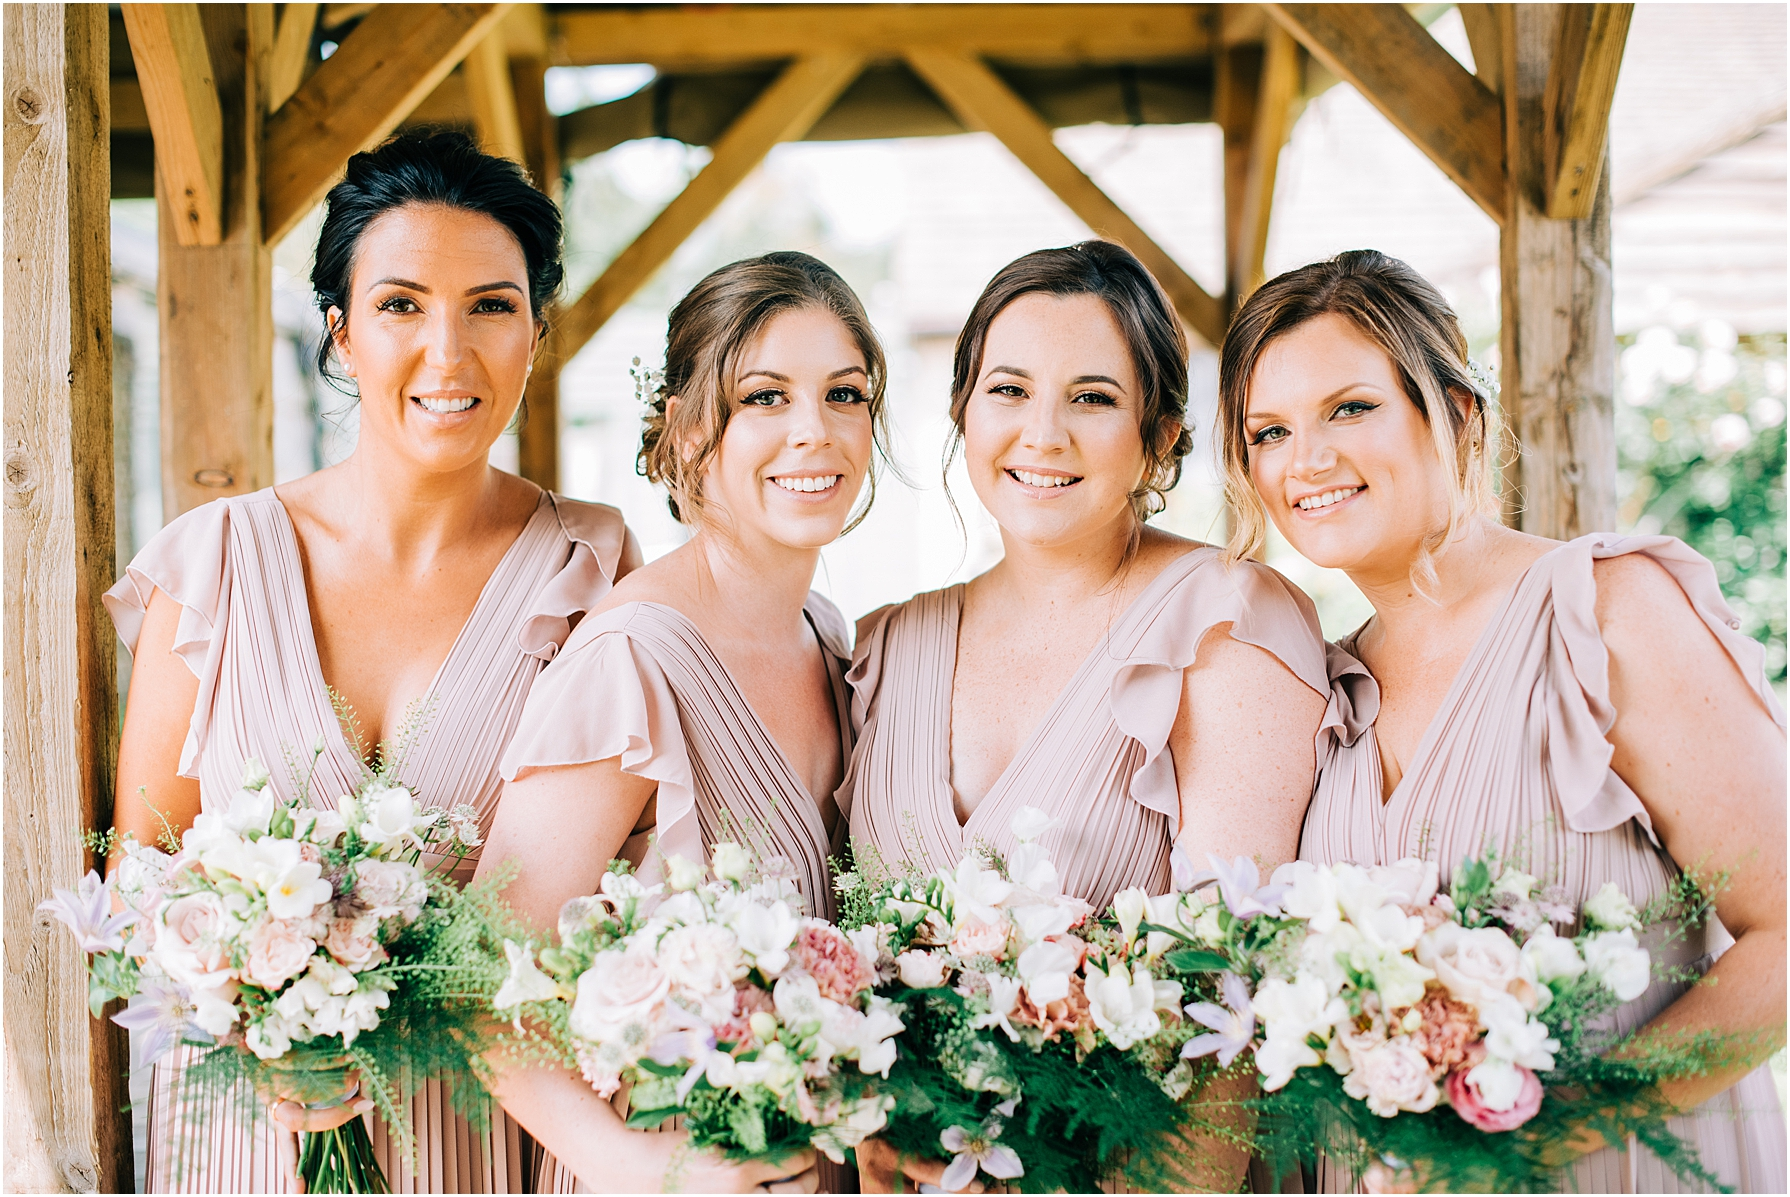 four bridesmaids in a row wearing pale pink dresses and holding bouquets